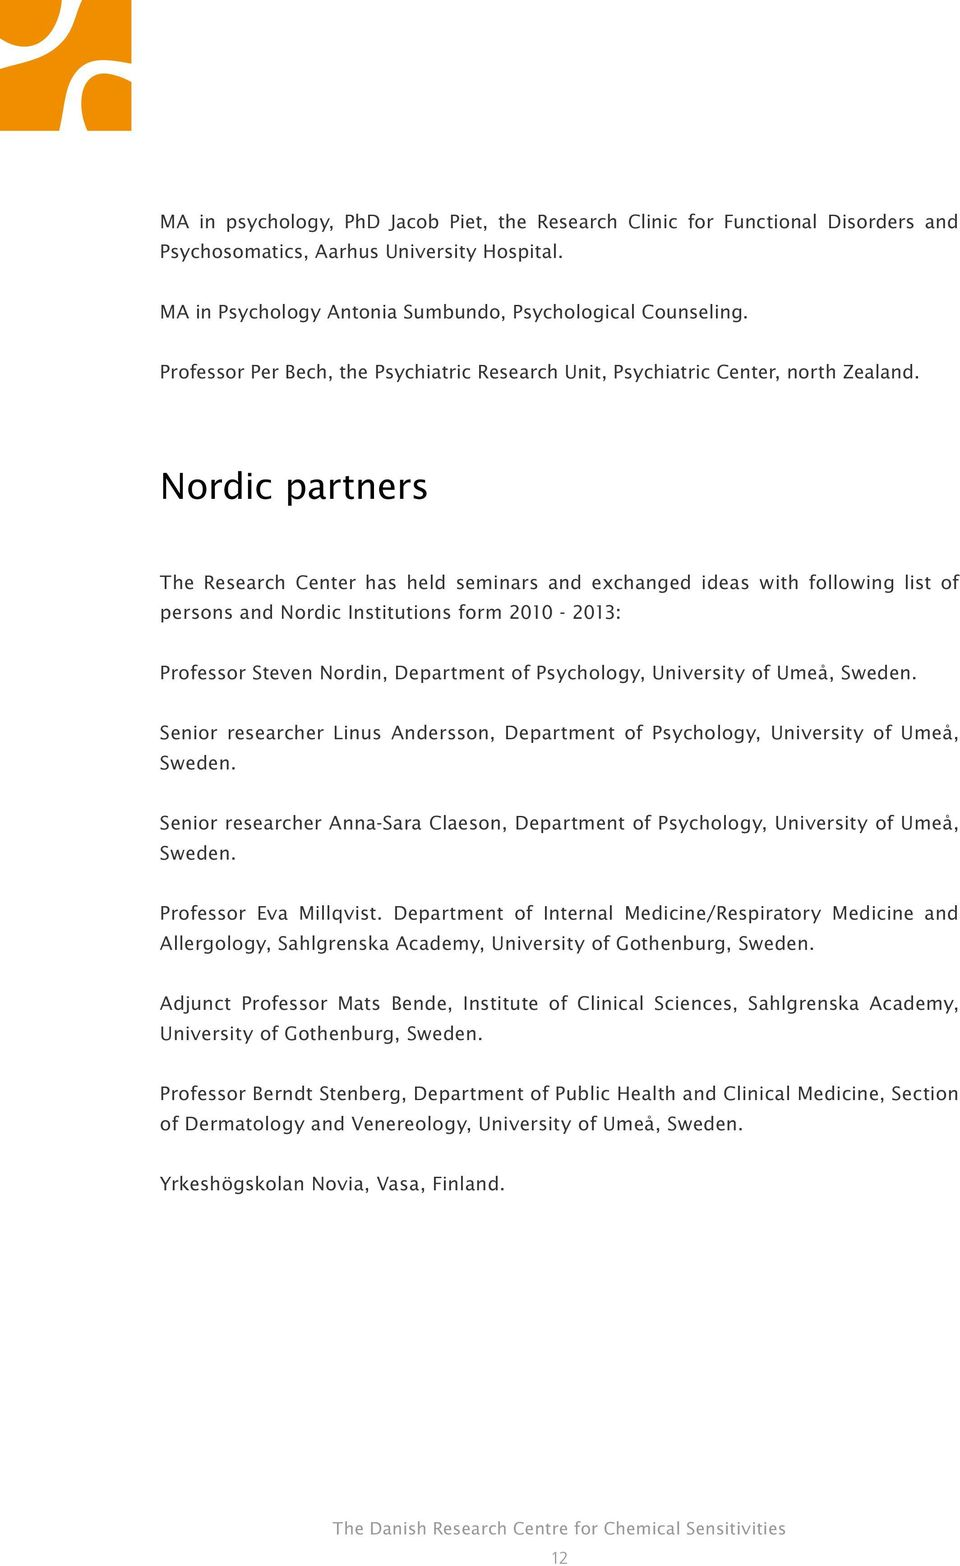 Nordic partners The Research Center has held seminars and exchanged ideas with following list of persons and Nordic Institutions form 2010-2013: Professor Steven Nordin, Department of Psychology,